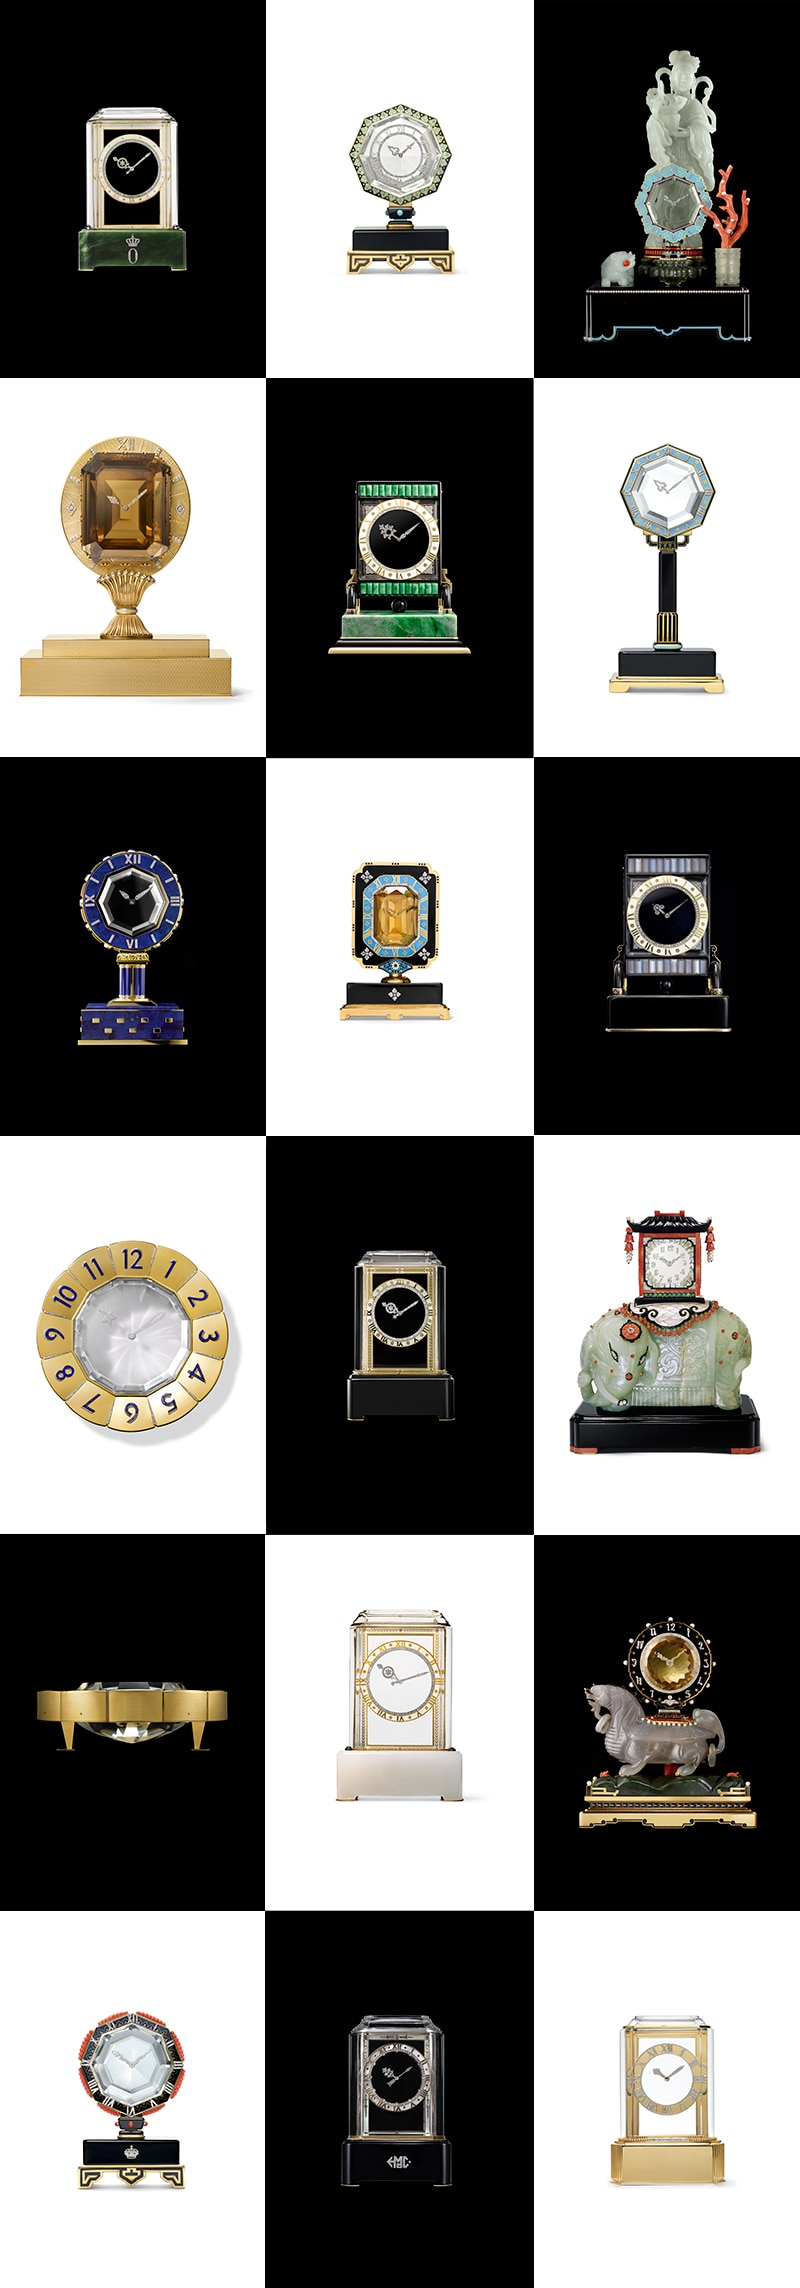 Mystery clocks in the Cartier collection